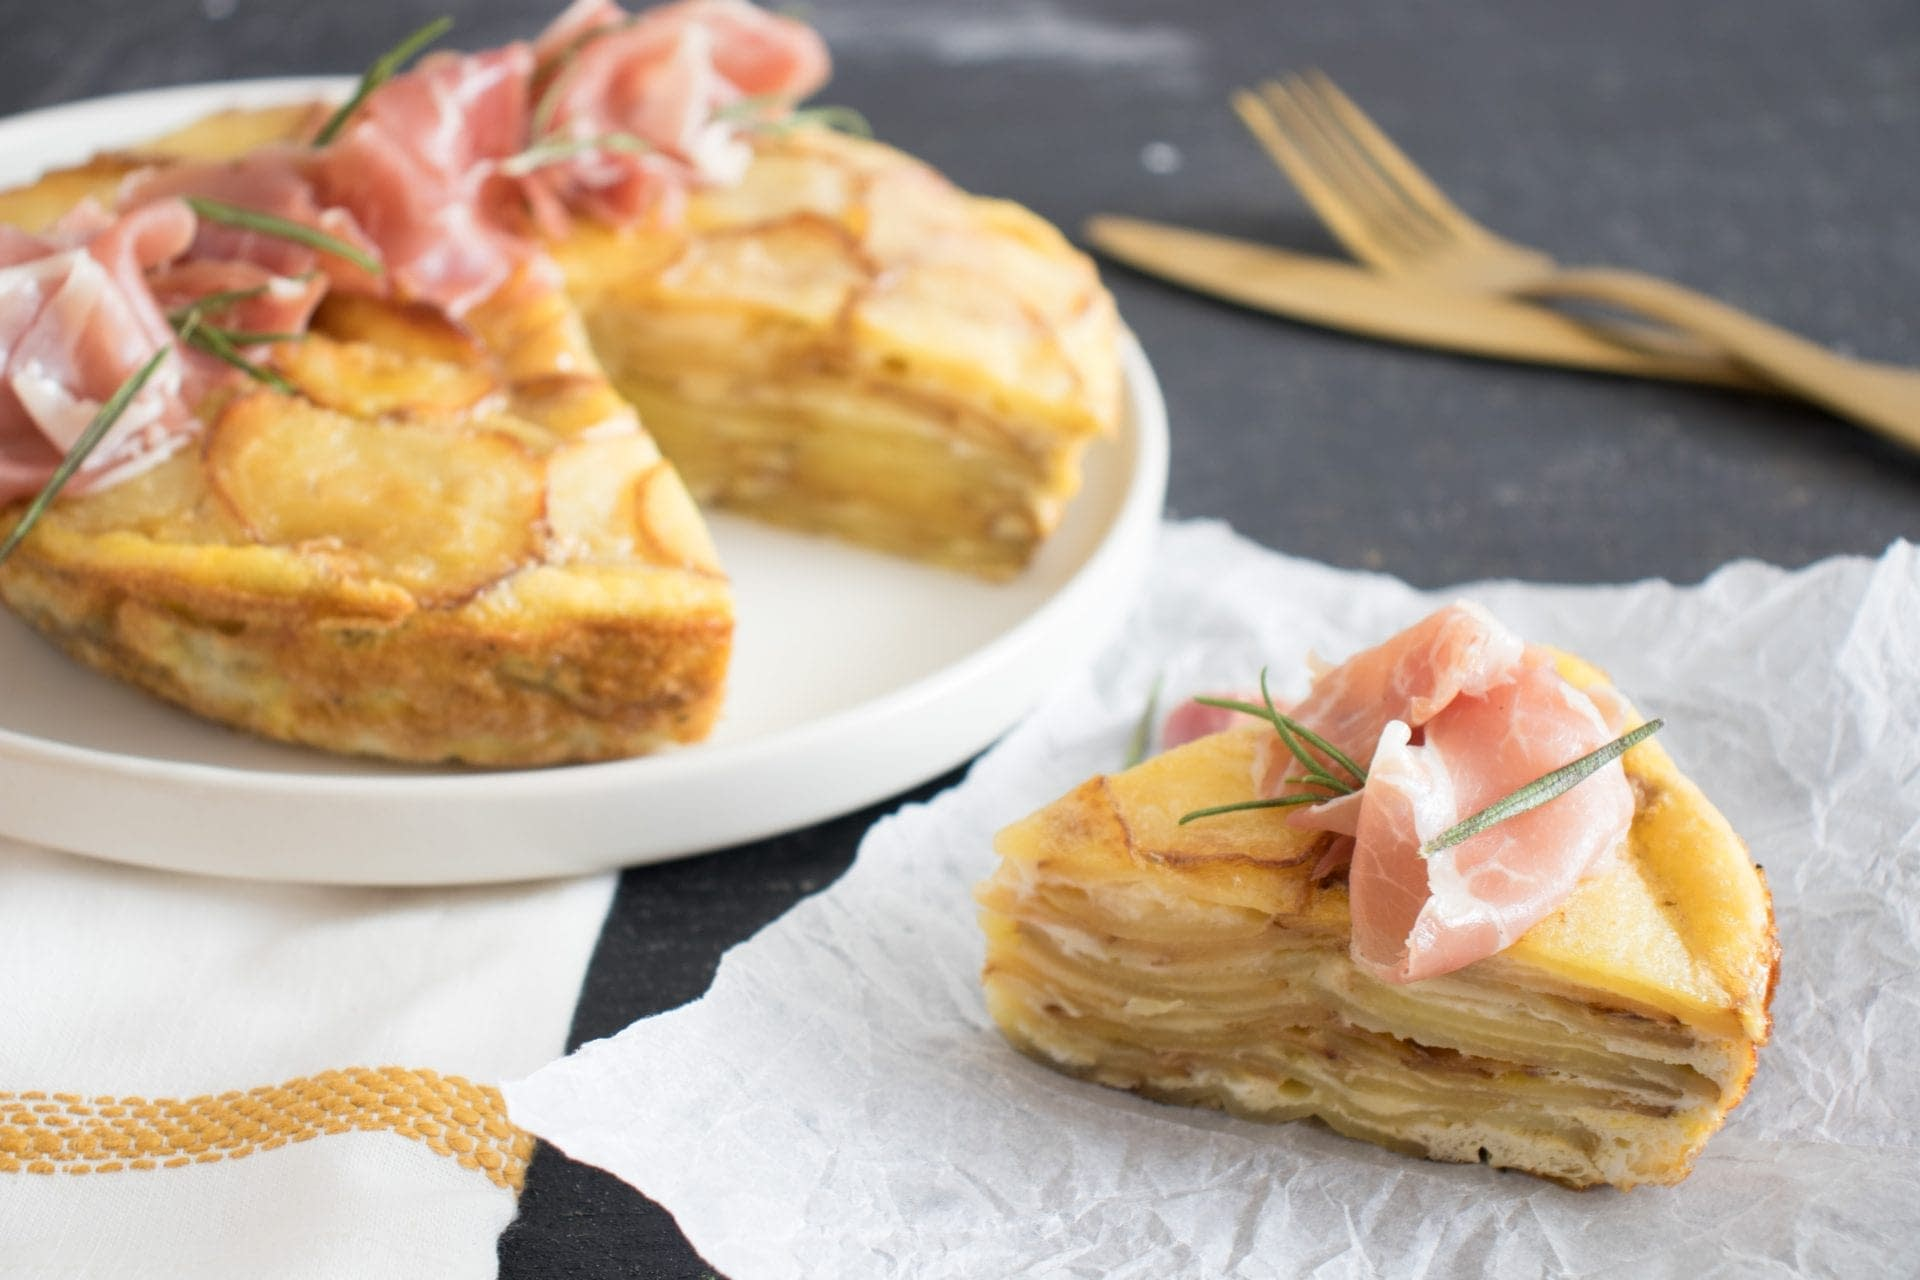 Spanish Potato & Egg Tortilla with Serrano Ham